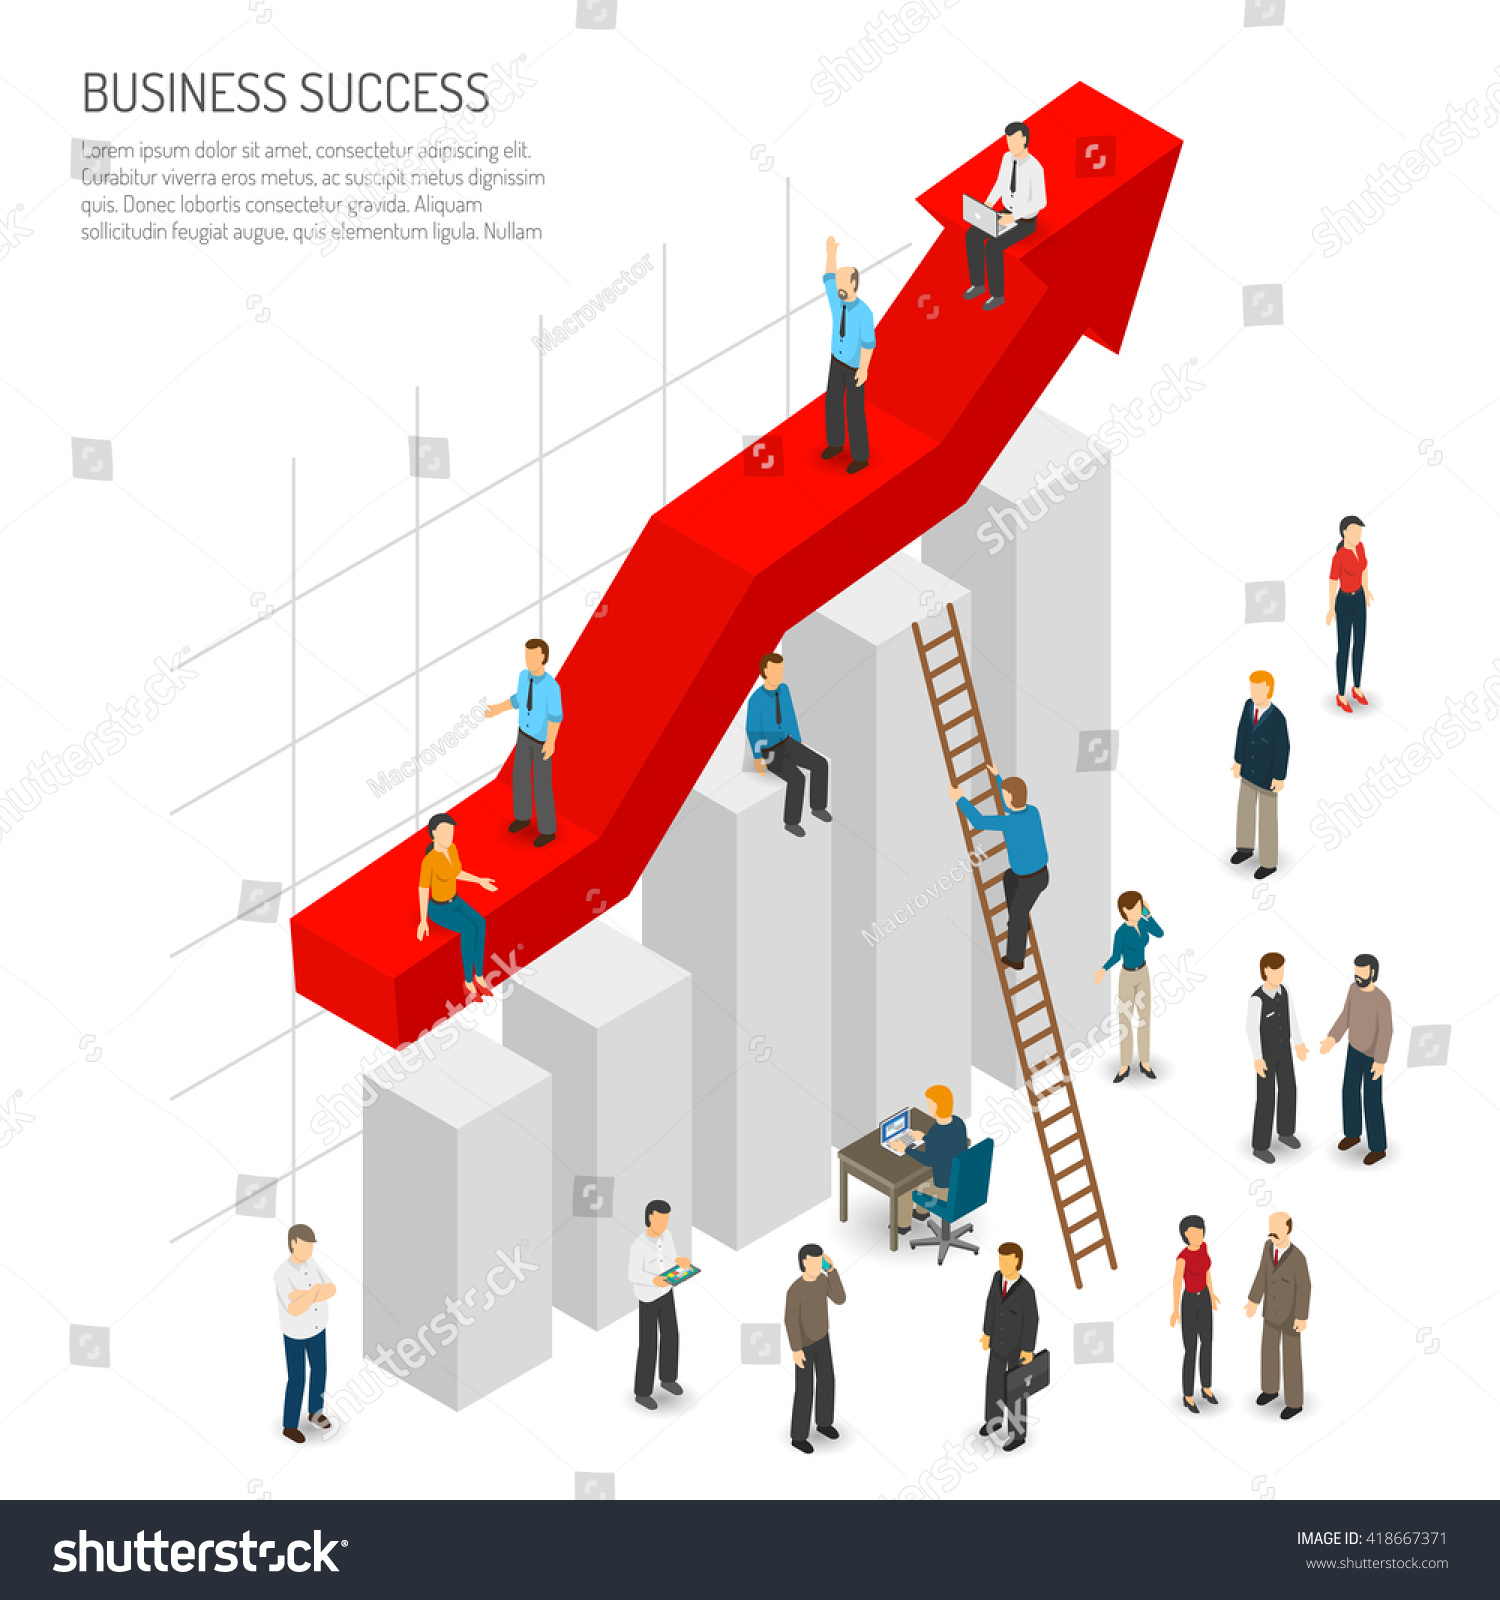 business success poster abstract diagram red stock vector. Black Bedroom Furniture Sets. Home Design Ideas